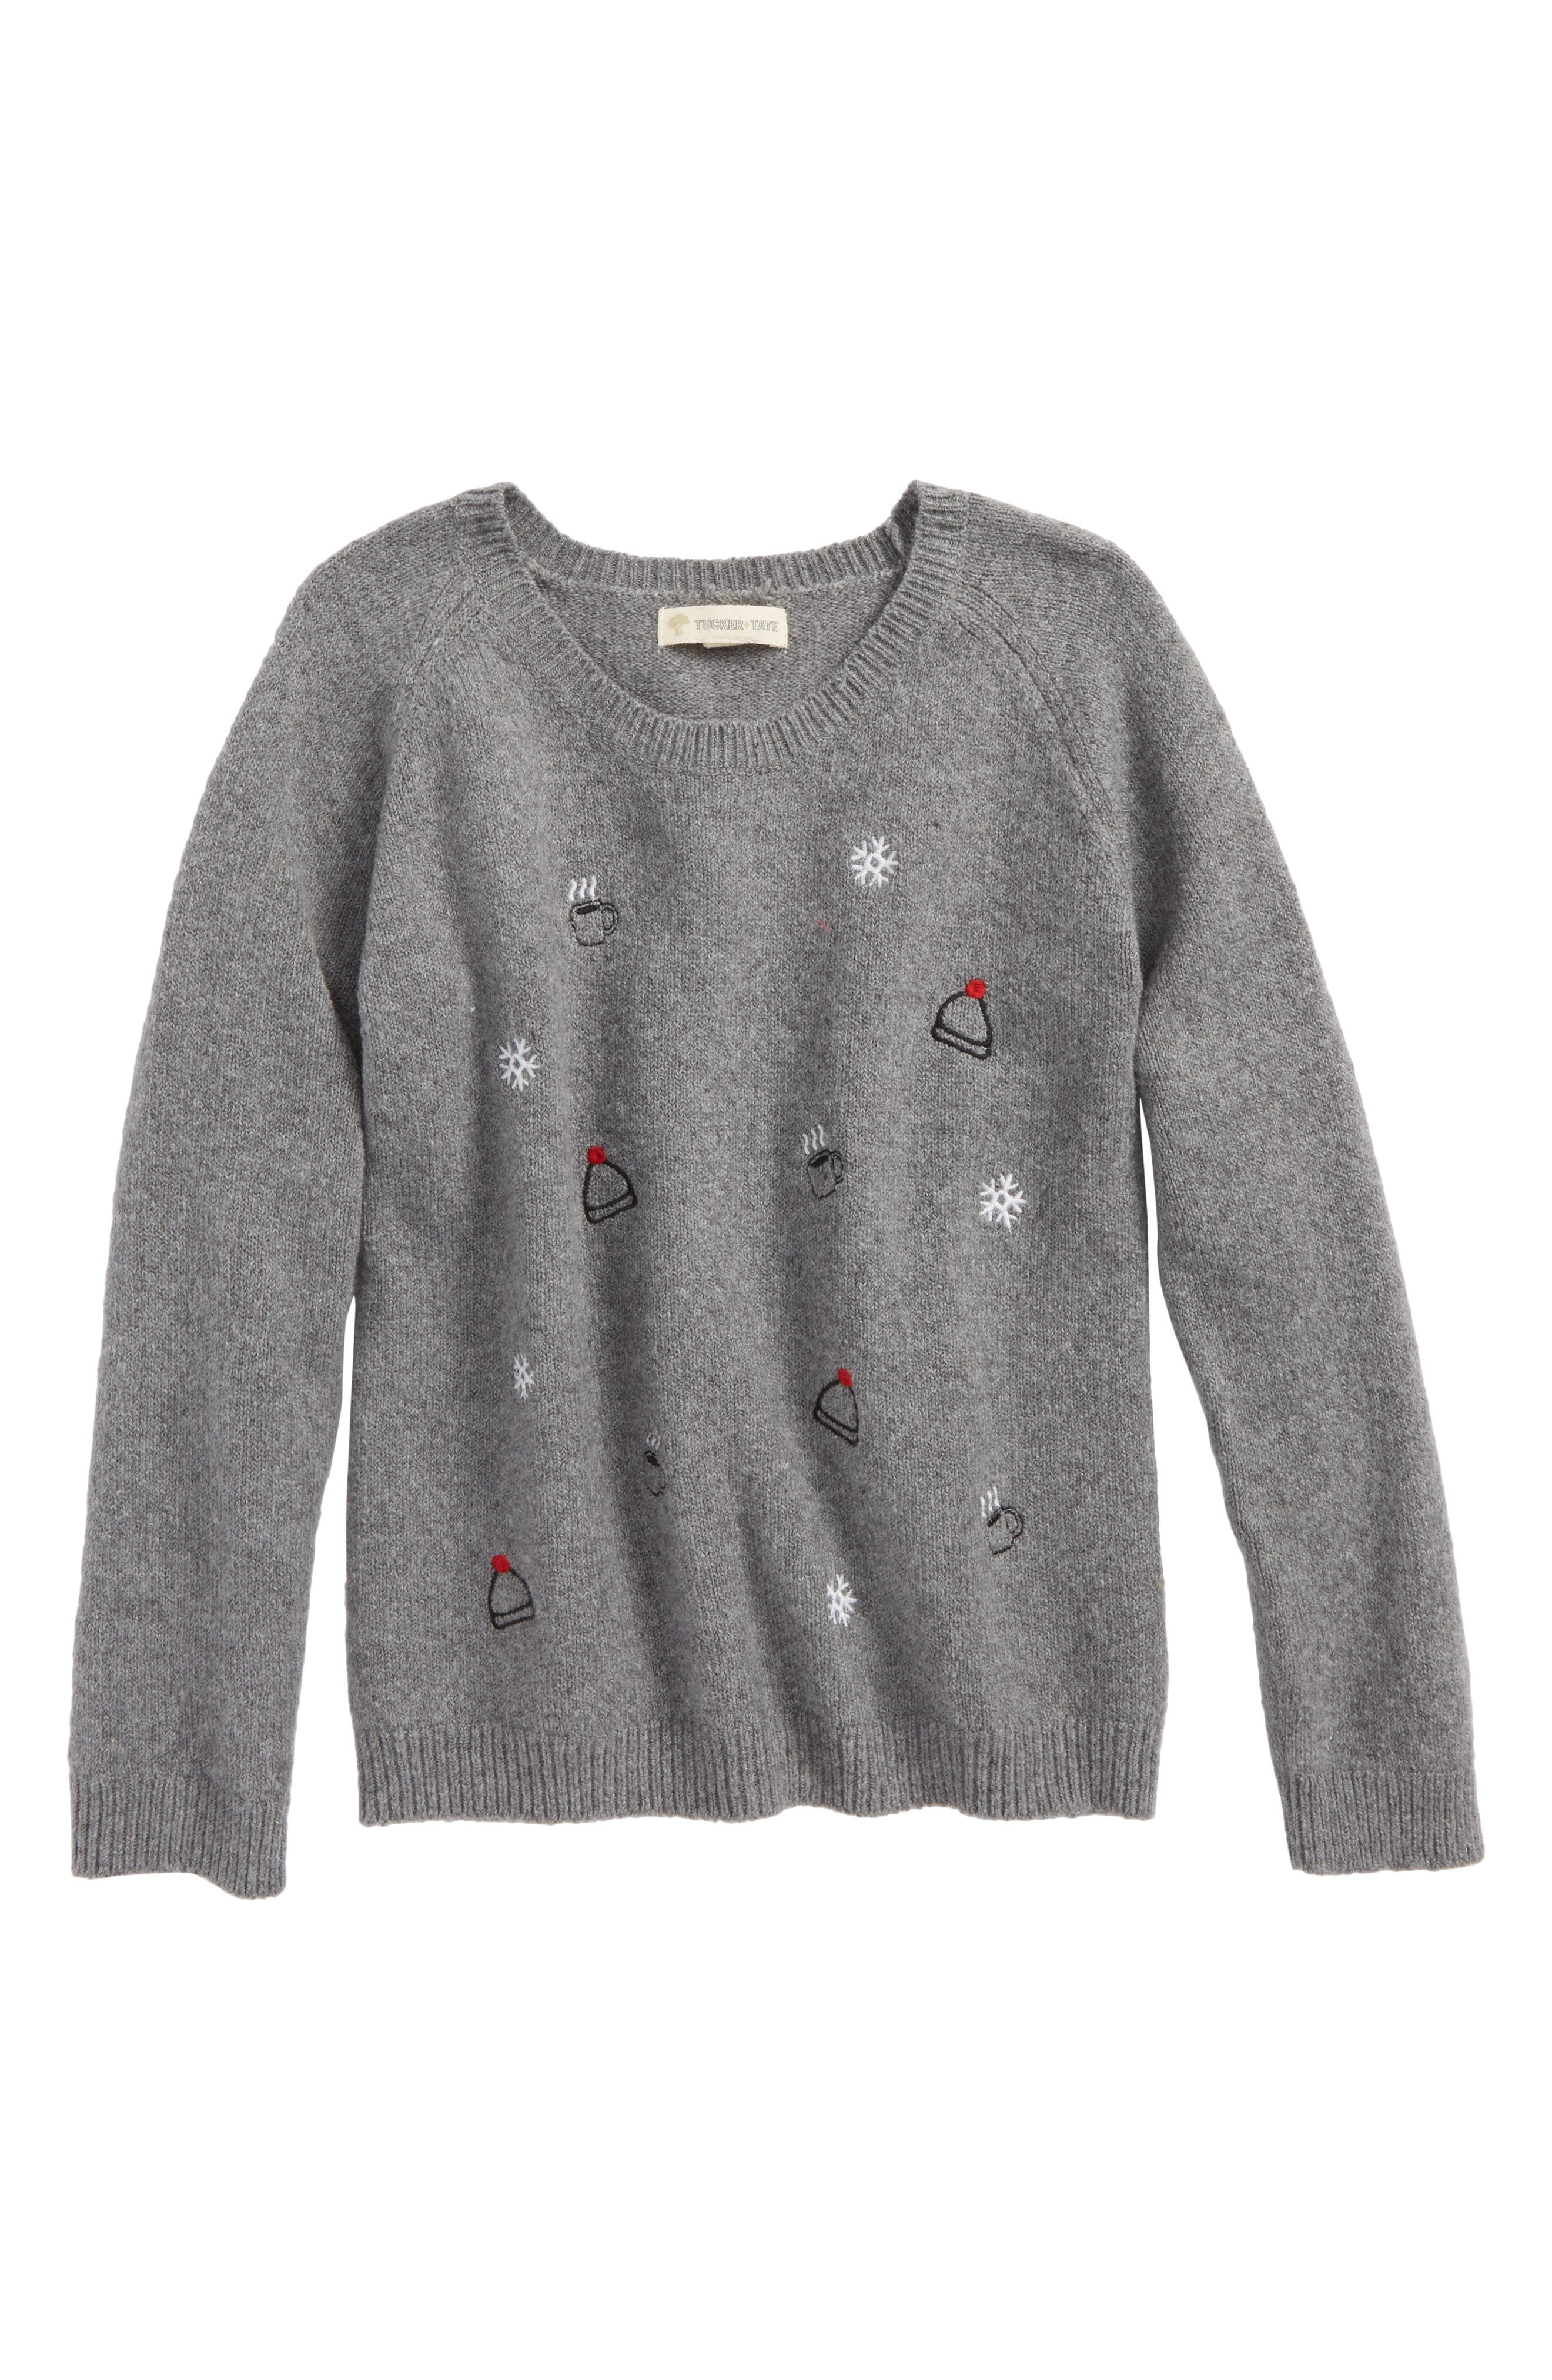 Embroidered Sweater,                             Main thumbnail 1, color,                             030